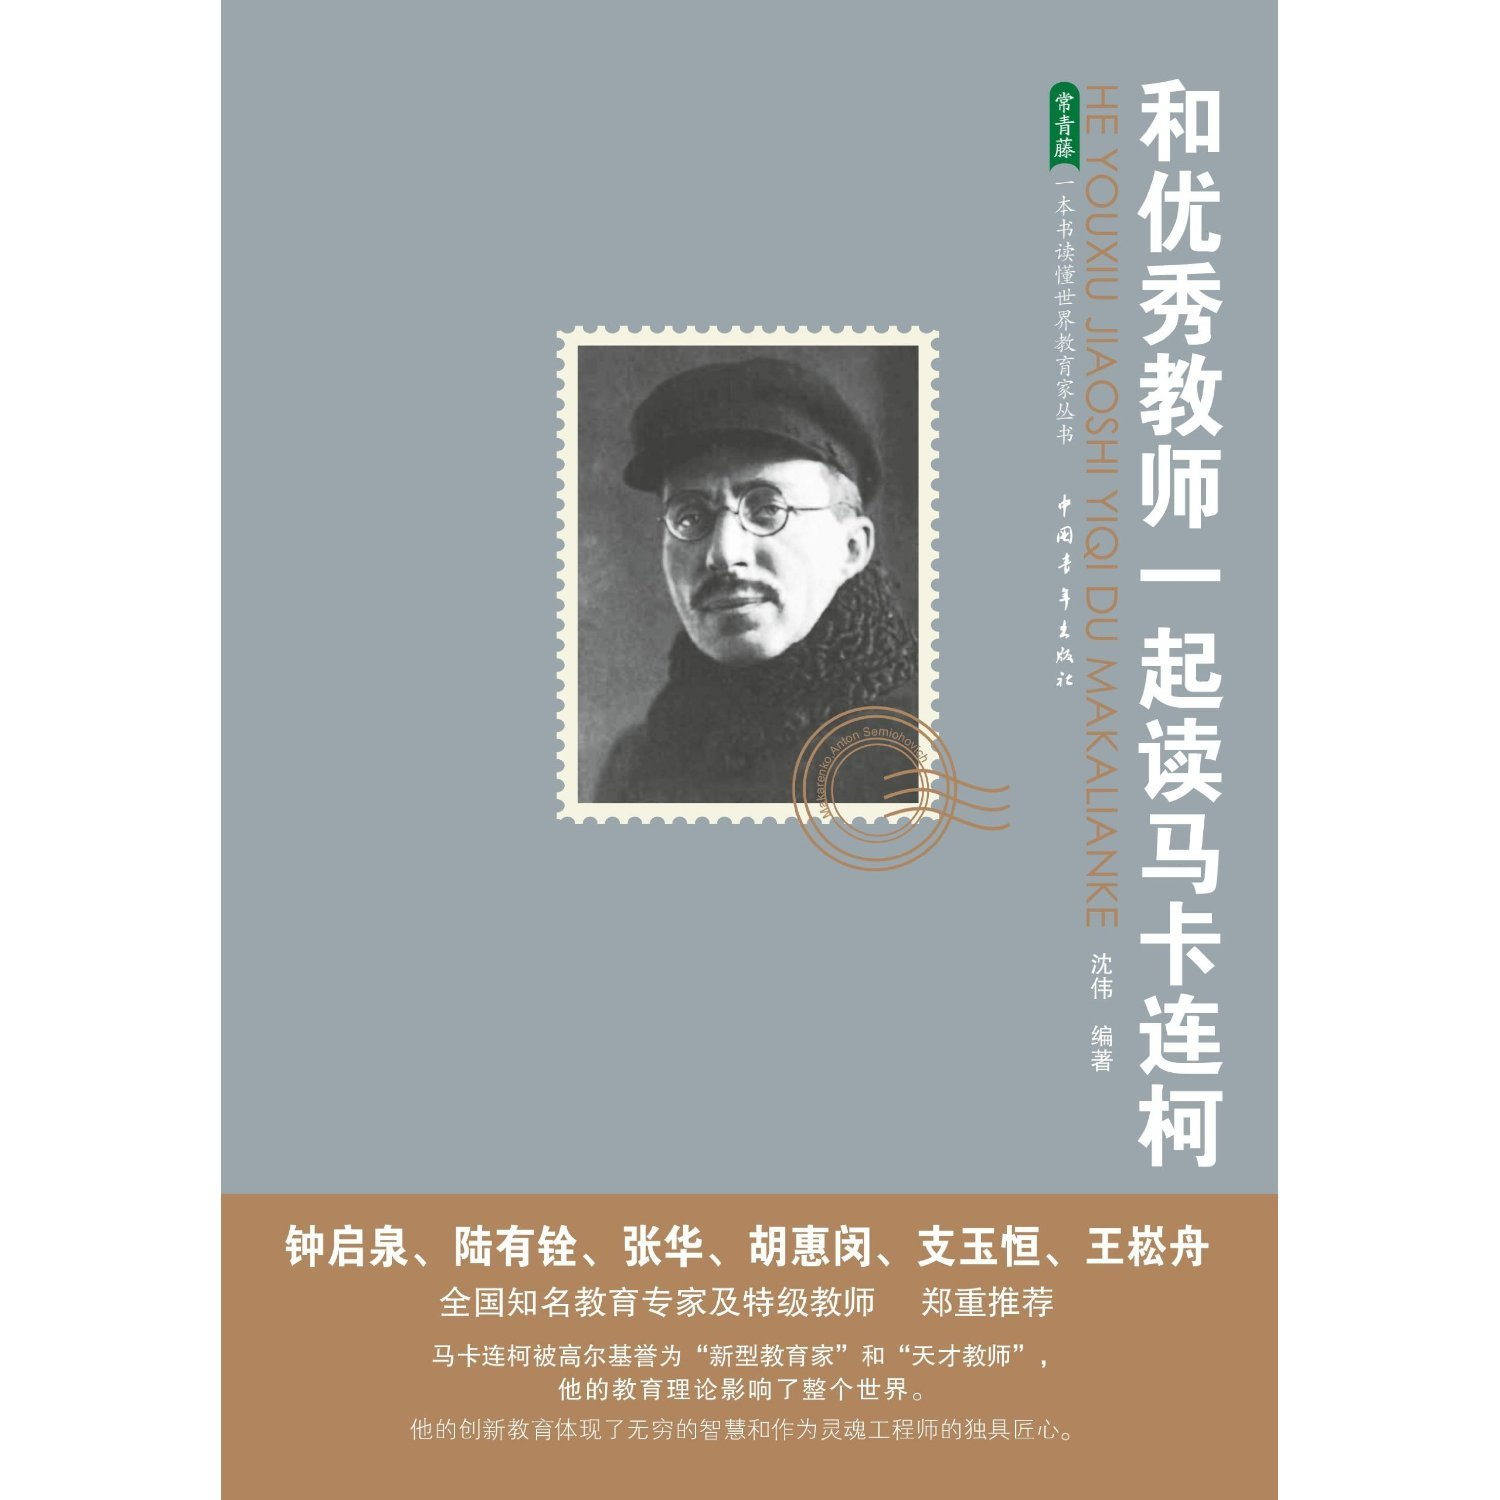 Download Read Makarenko with Excellent Teachers/Ivy Book Series: Reading World Educators (Chinese Edition) PDF